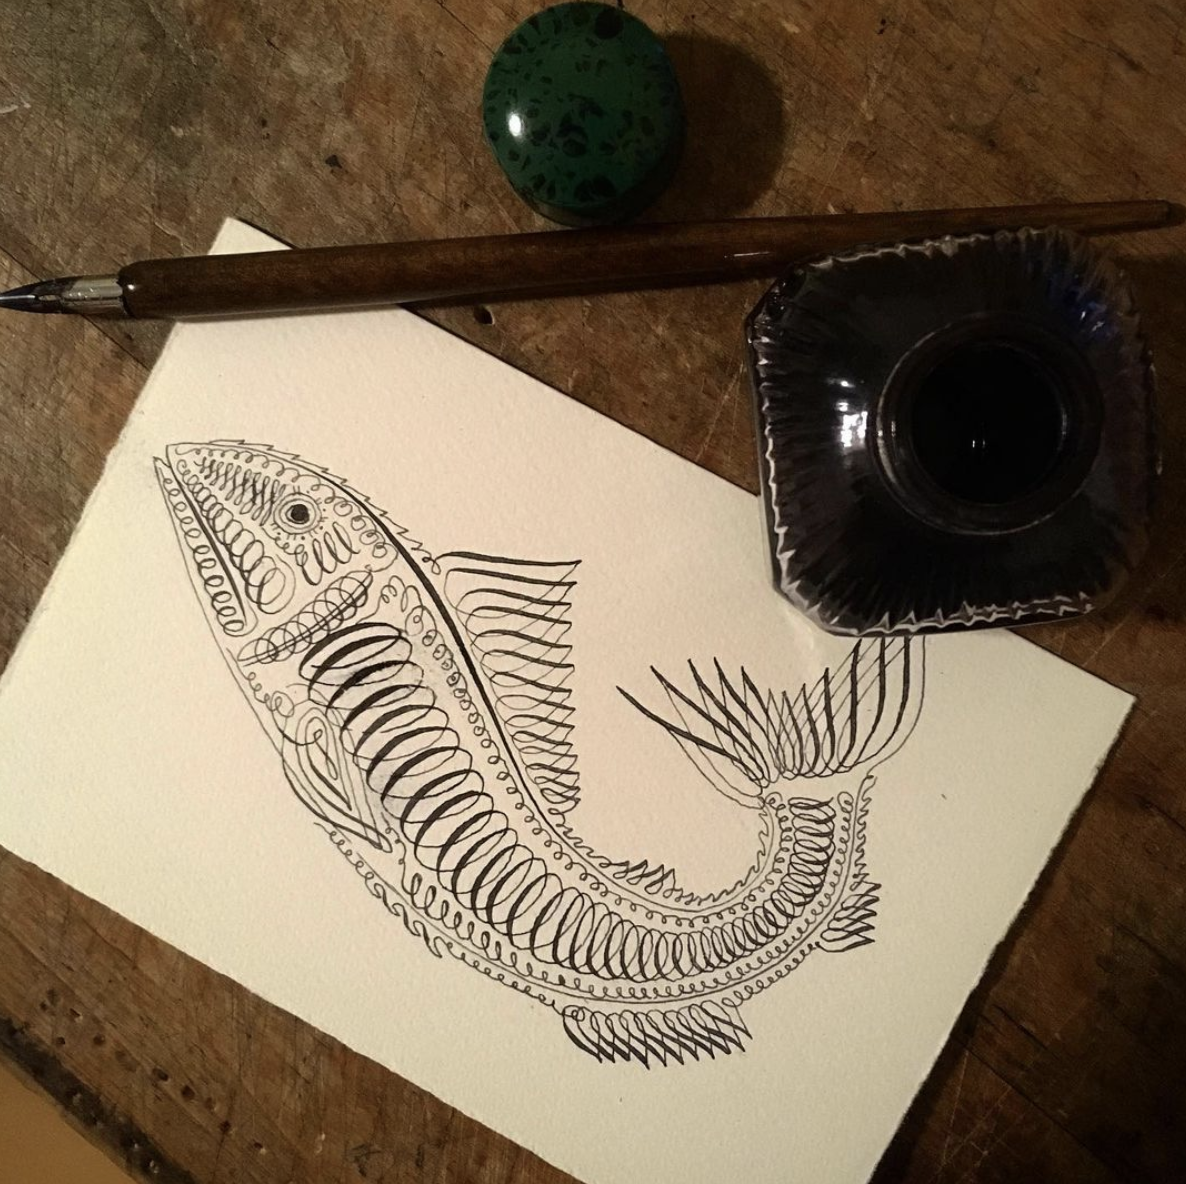 Calligraphy pen drawing of fish